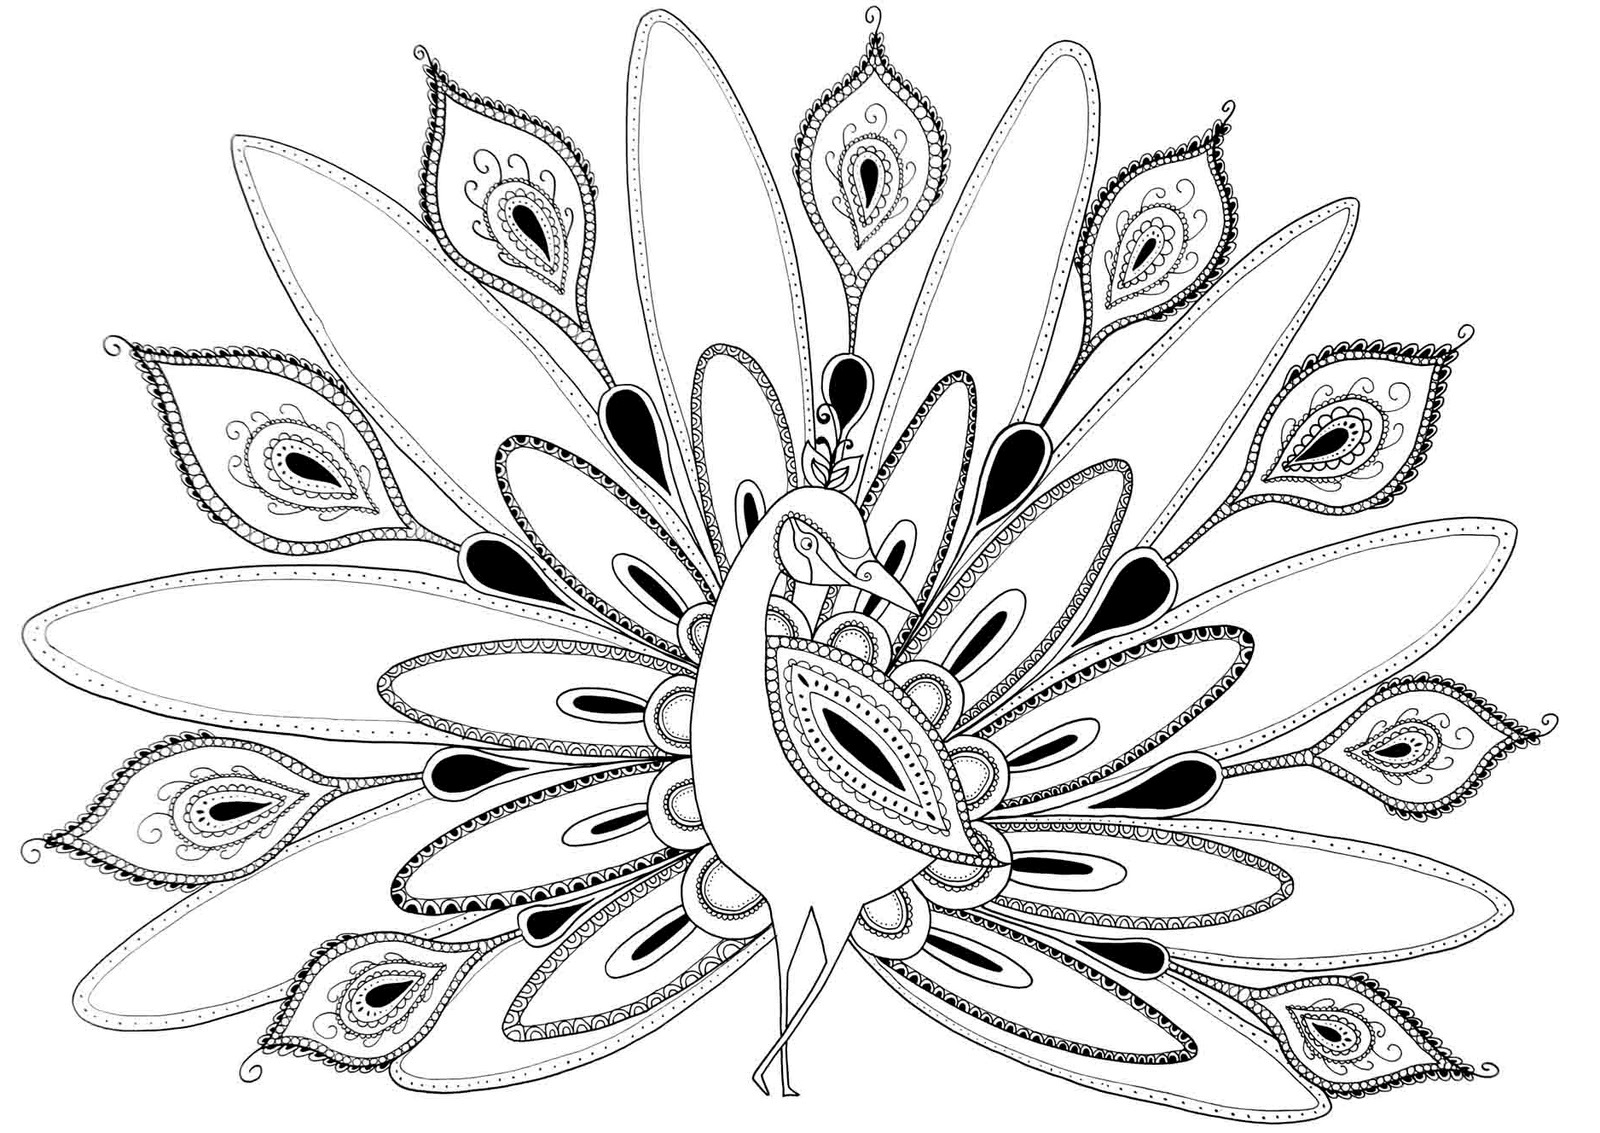 easy printable peacock coloring pages free printable peacock coloring pages for kids peacock easy coloring pages printable